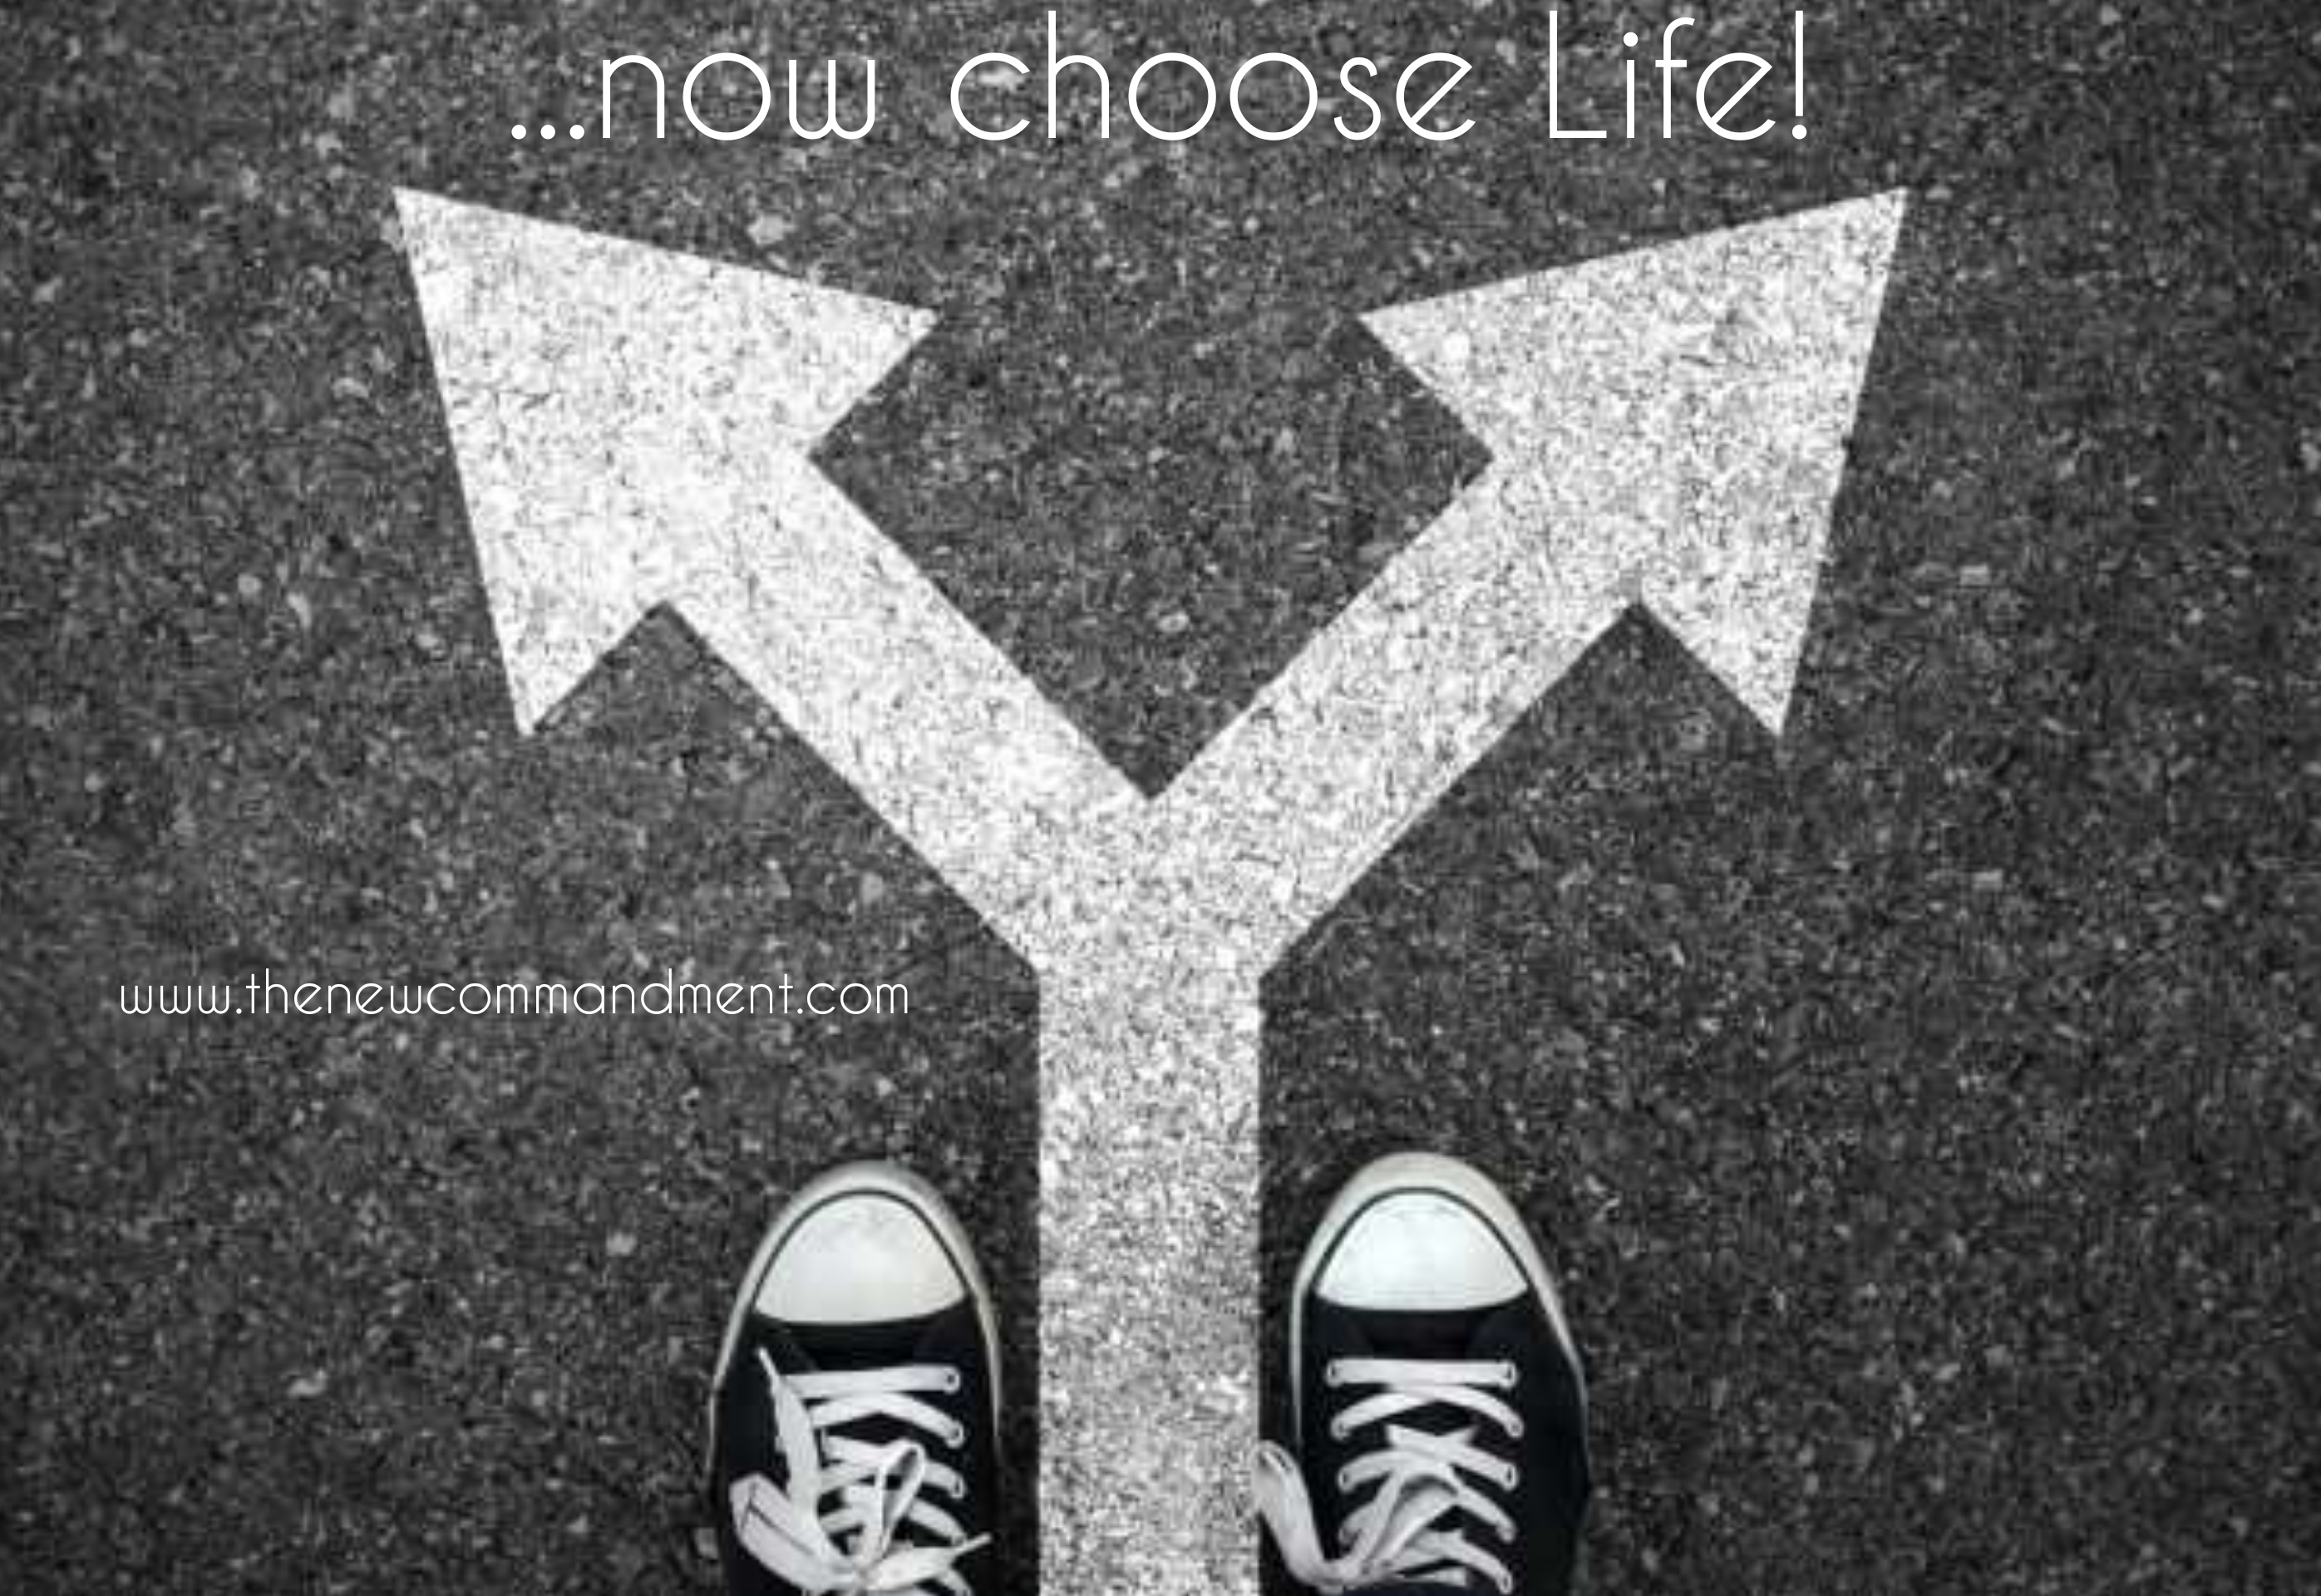 LIFE IS ABOUT TAKING DECISIONS